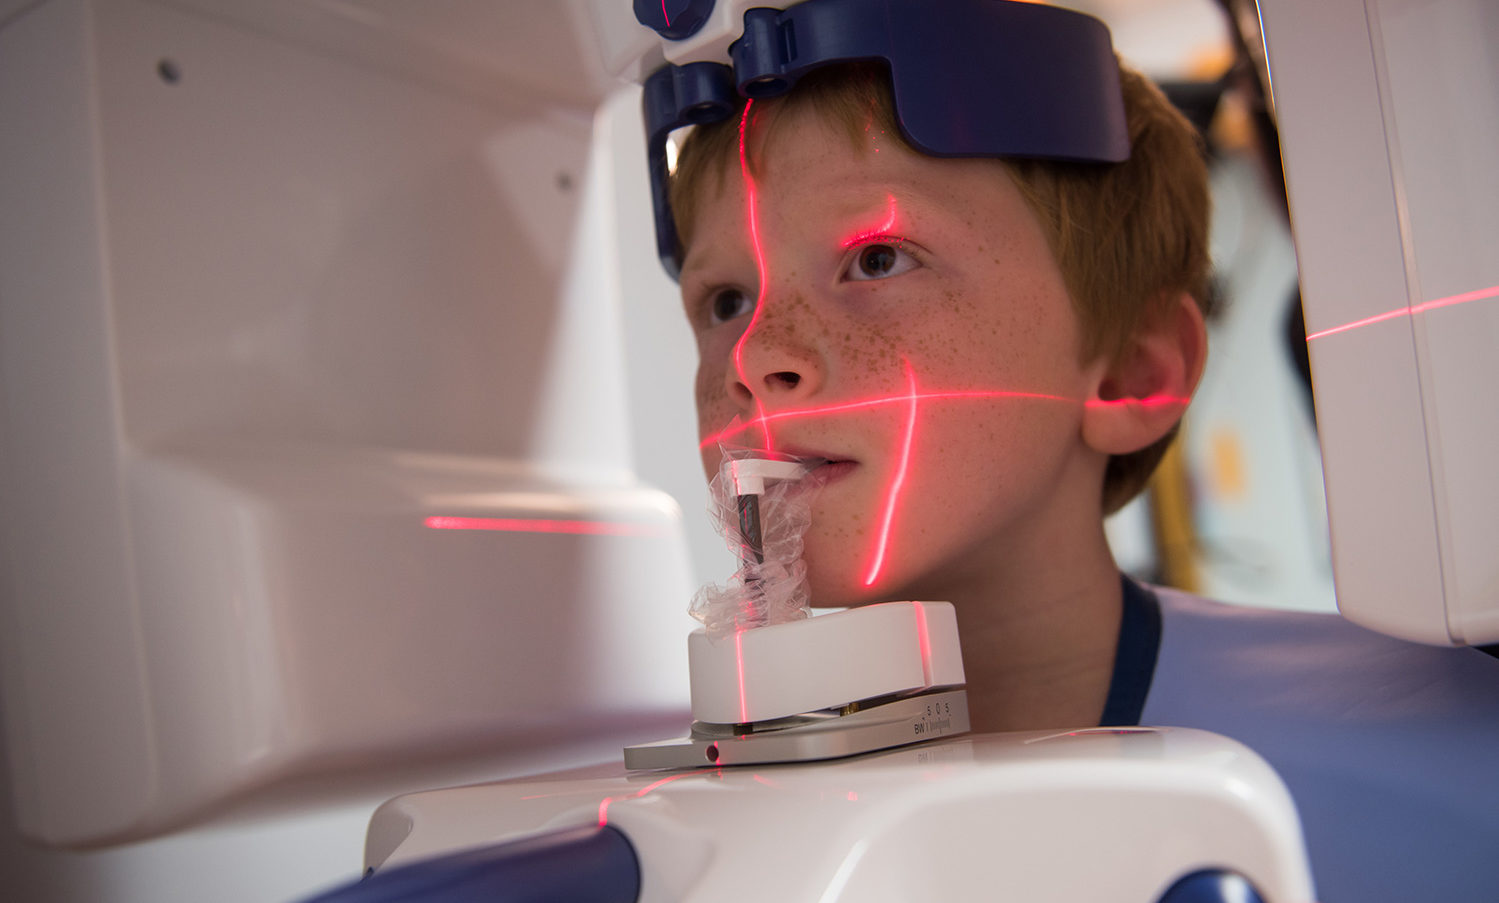 child being scanned by medical device